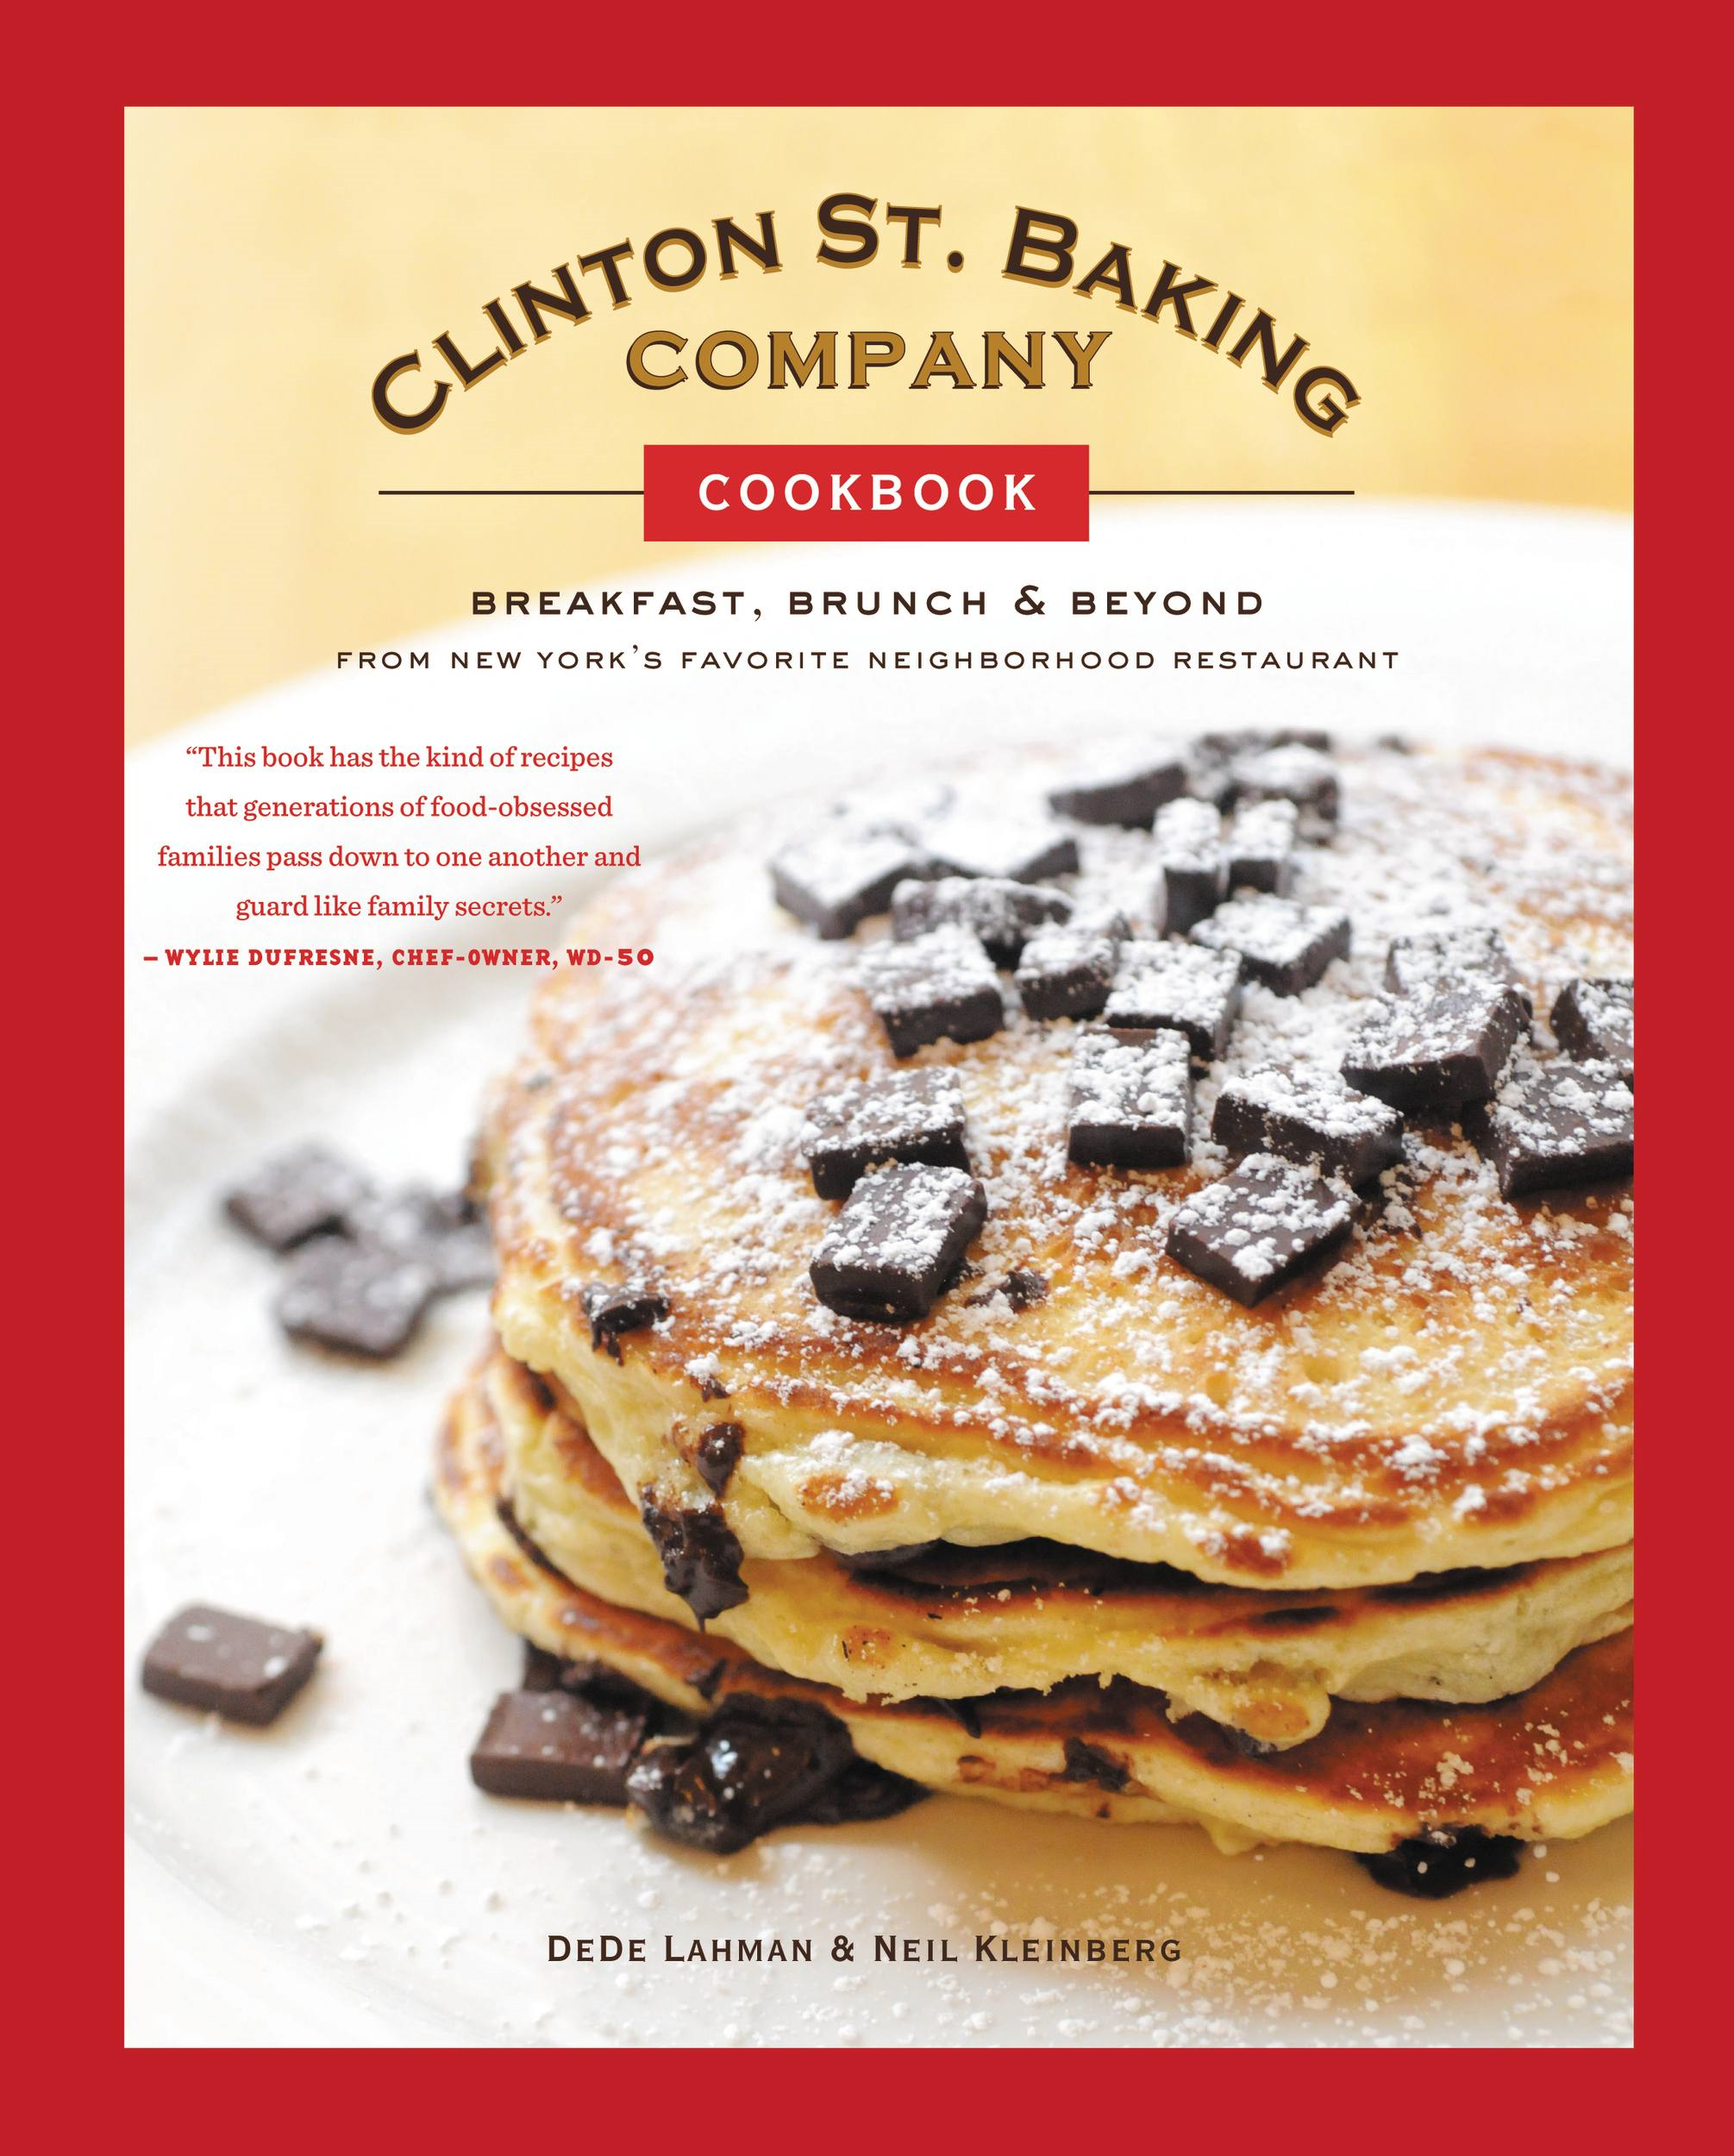 Clinton St. Baking Company Cookbook By: DeDe Lahman,Neil Kleinberg